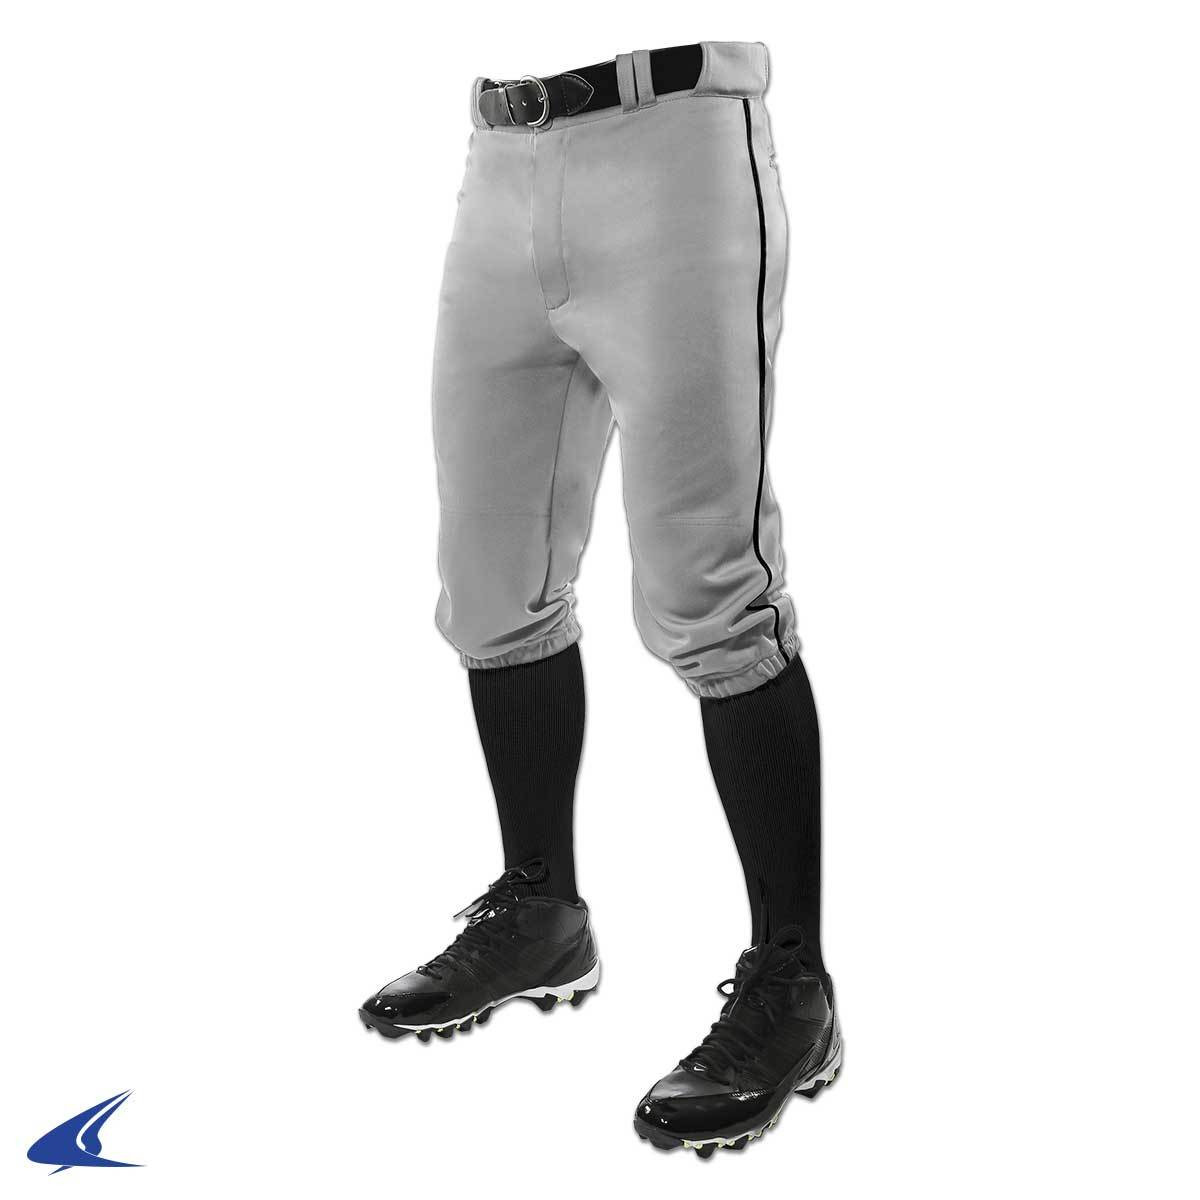 Champro Triple Crown Knicker with Braid, Baseball Pants